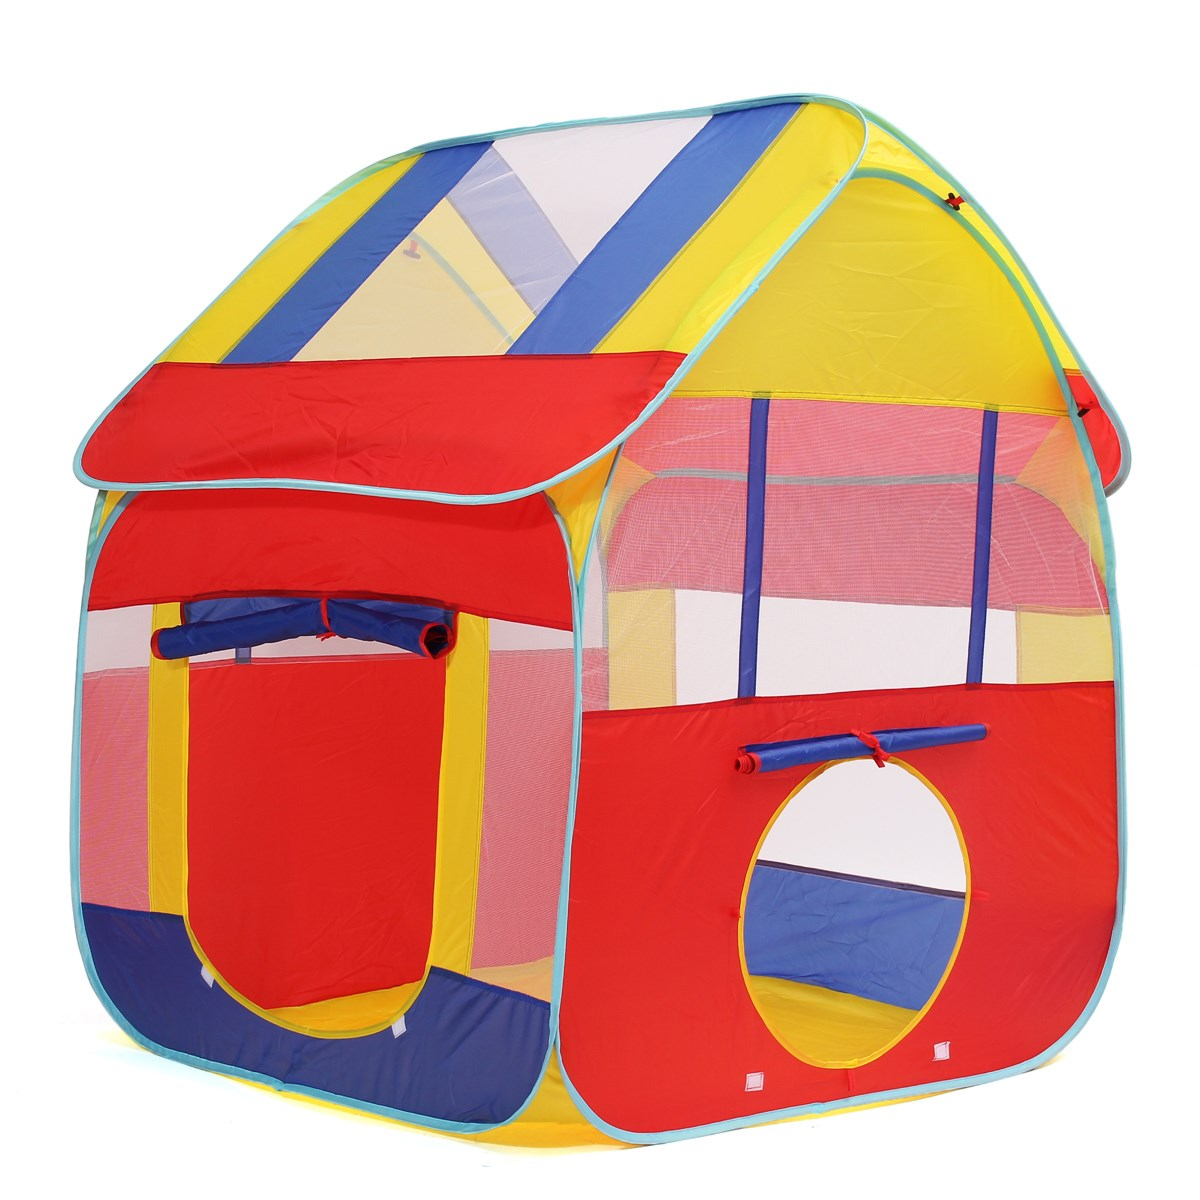 Portable Foldable Play House Tent Prince Folding Tent Children Boy Castle Cubby Play House Kids Gifts Outdoor Toy Tents-in Toy Tents from Toys u0026 Hobbies on ...  sc 1 st  AliExpress.com & Portable Foldable Play House Tent Prince Folding Tent Children Boy ...